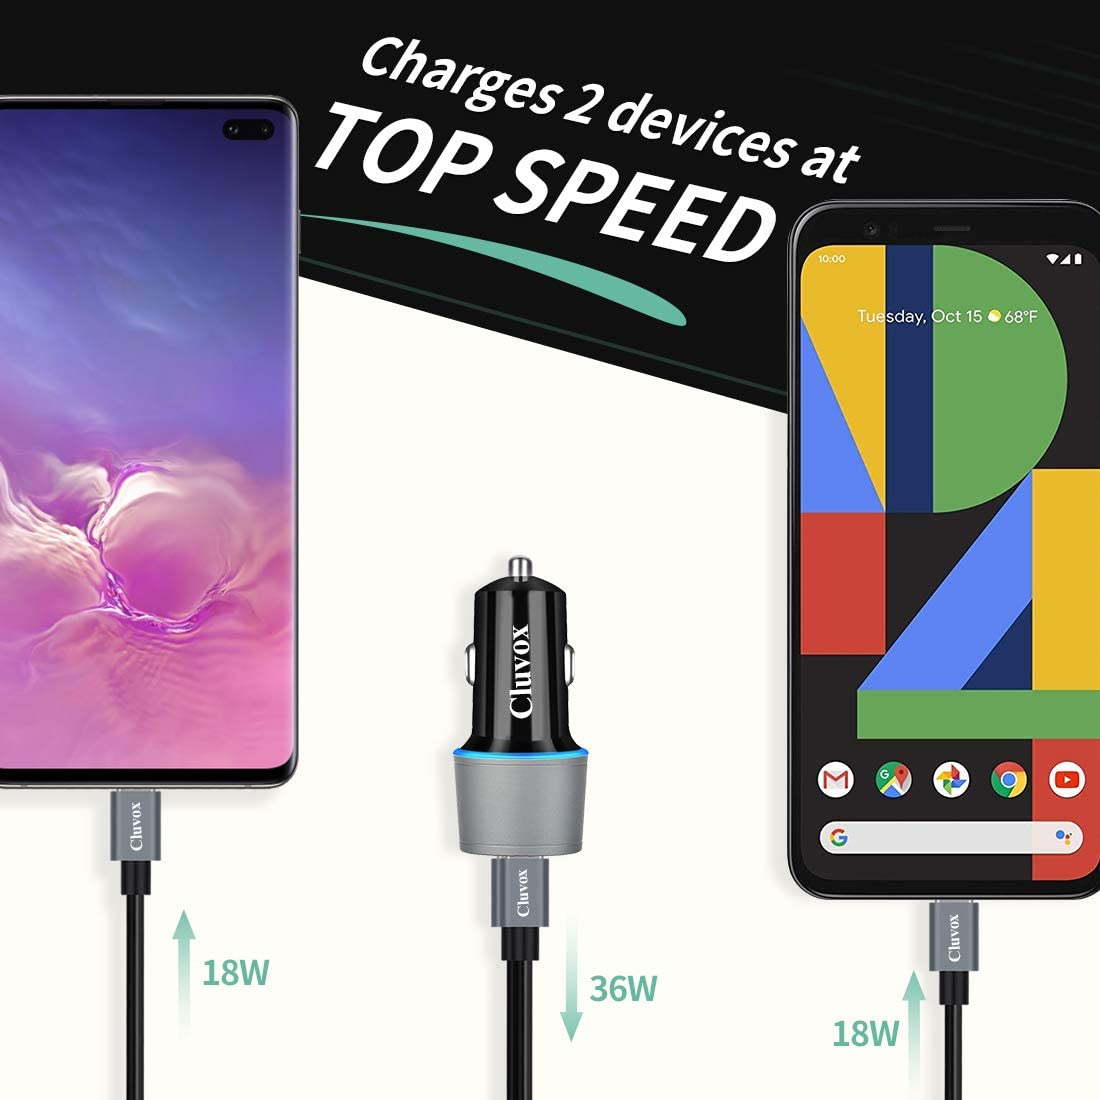 Cluvox Rapid Type C Car Charger Compatible Google Pixel 4 XL//3a XL//3a//3 XL//3//2 XL Samsung Galaxy S20 Plus//Ultra//Note 10//S10E//S10 Plus 18W Dual USB Fast Charging Car Adapter with 2-Pack Type C Cords